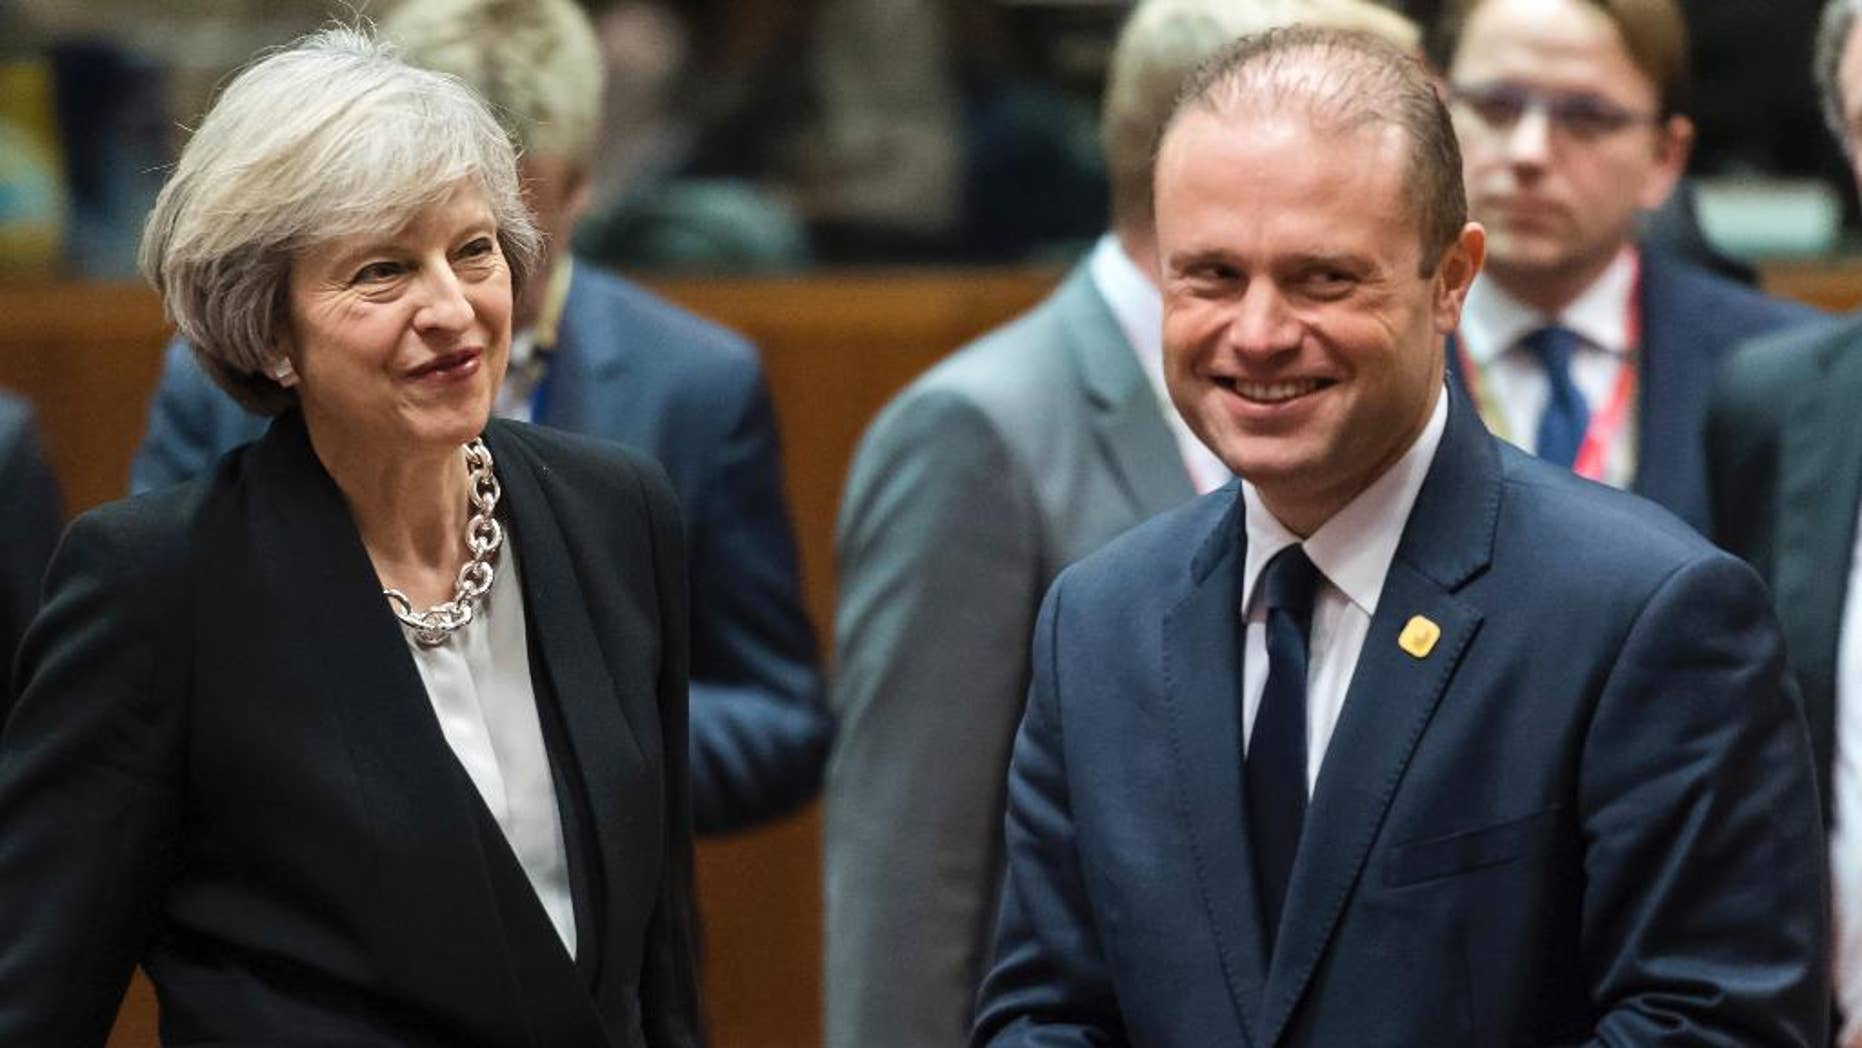 FILE - This is a Thursday, Dec. 15, 2016 file photo of British Prime Minister Theresa May, left, speaks with Malta's Prime Minister Joseph Muscat, during a round table meeting at an EU Summit in Brussels . Muscat the leader of the European Union's smallest nation warned Britain on Wednesday Jan. 11, 2016  that it can only lose by leaving the EU and that no member state is likely to break ranks and negotiate with London until it has departed. (AP Photo/Geert Vanden Wijngaert, File)